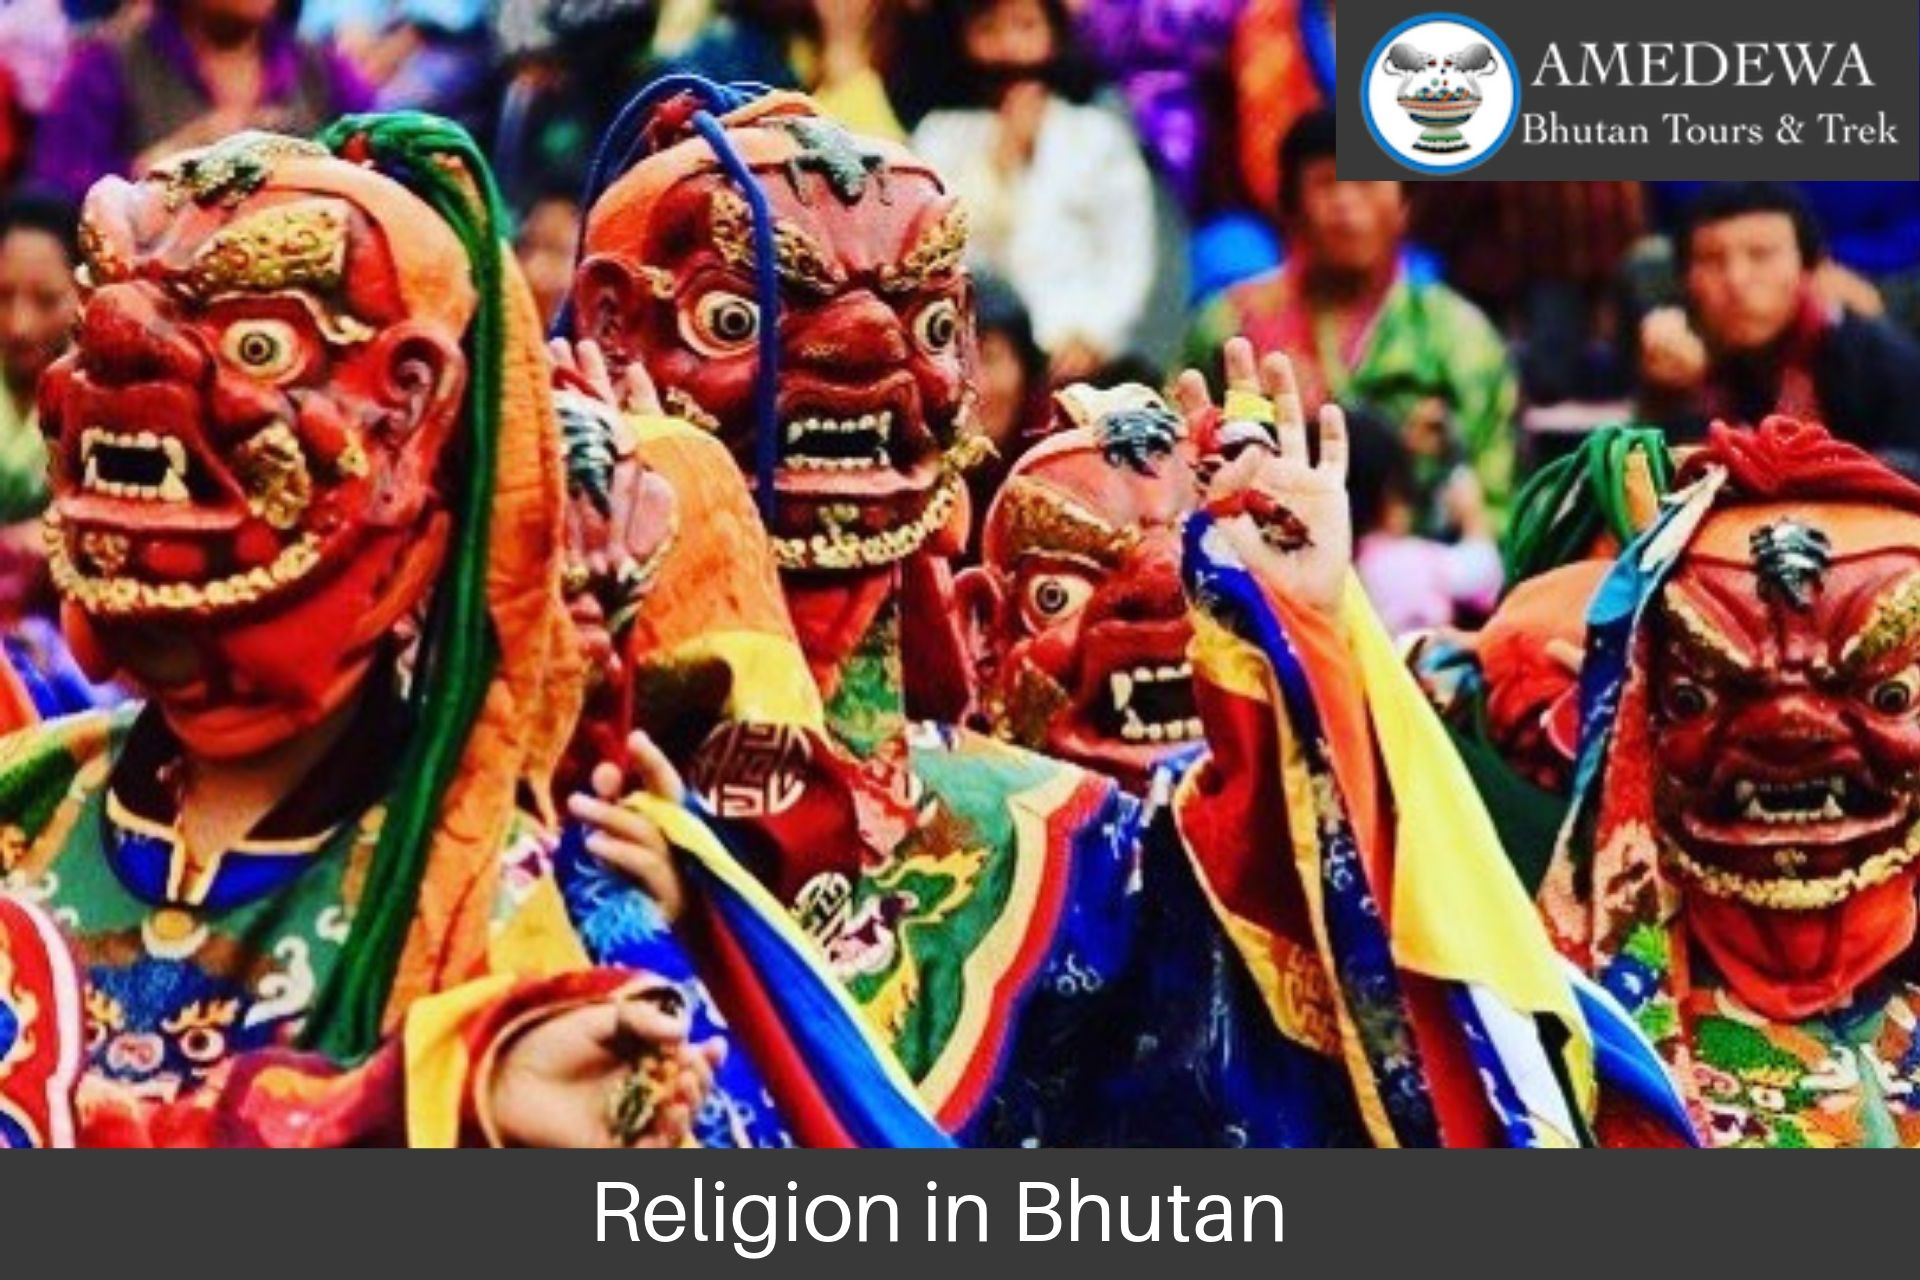 Religion in Bhutan | Amedewa Bhutan Tours & Trek